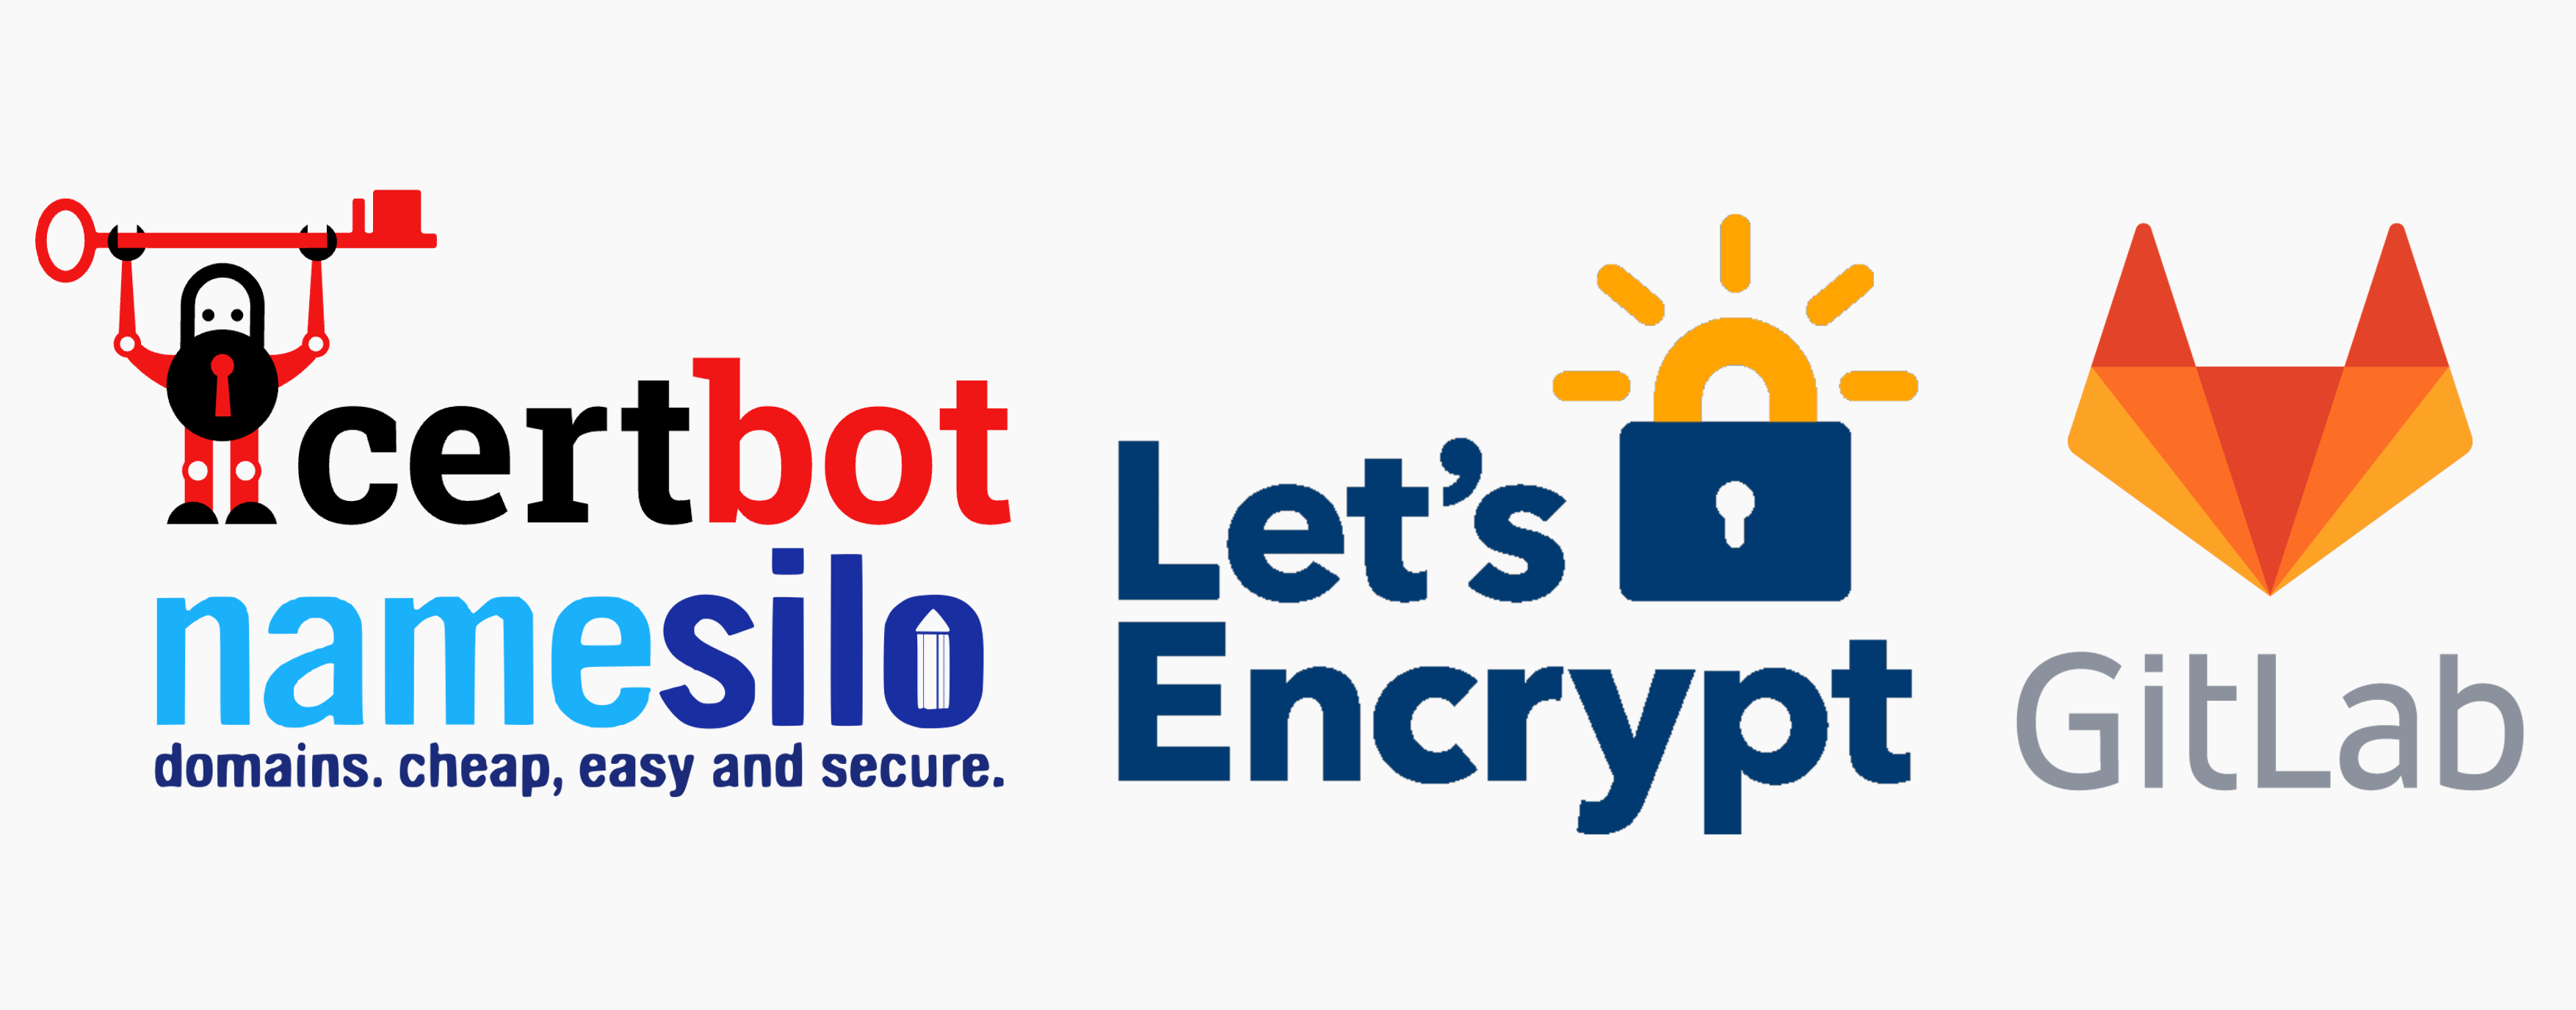 Logos of Namesilo, Letsencrypt, Certbot and GitLab